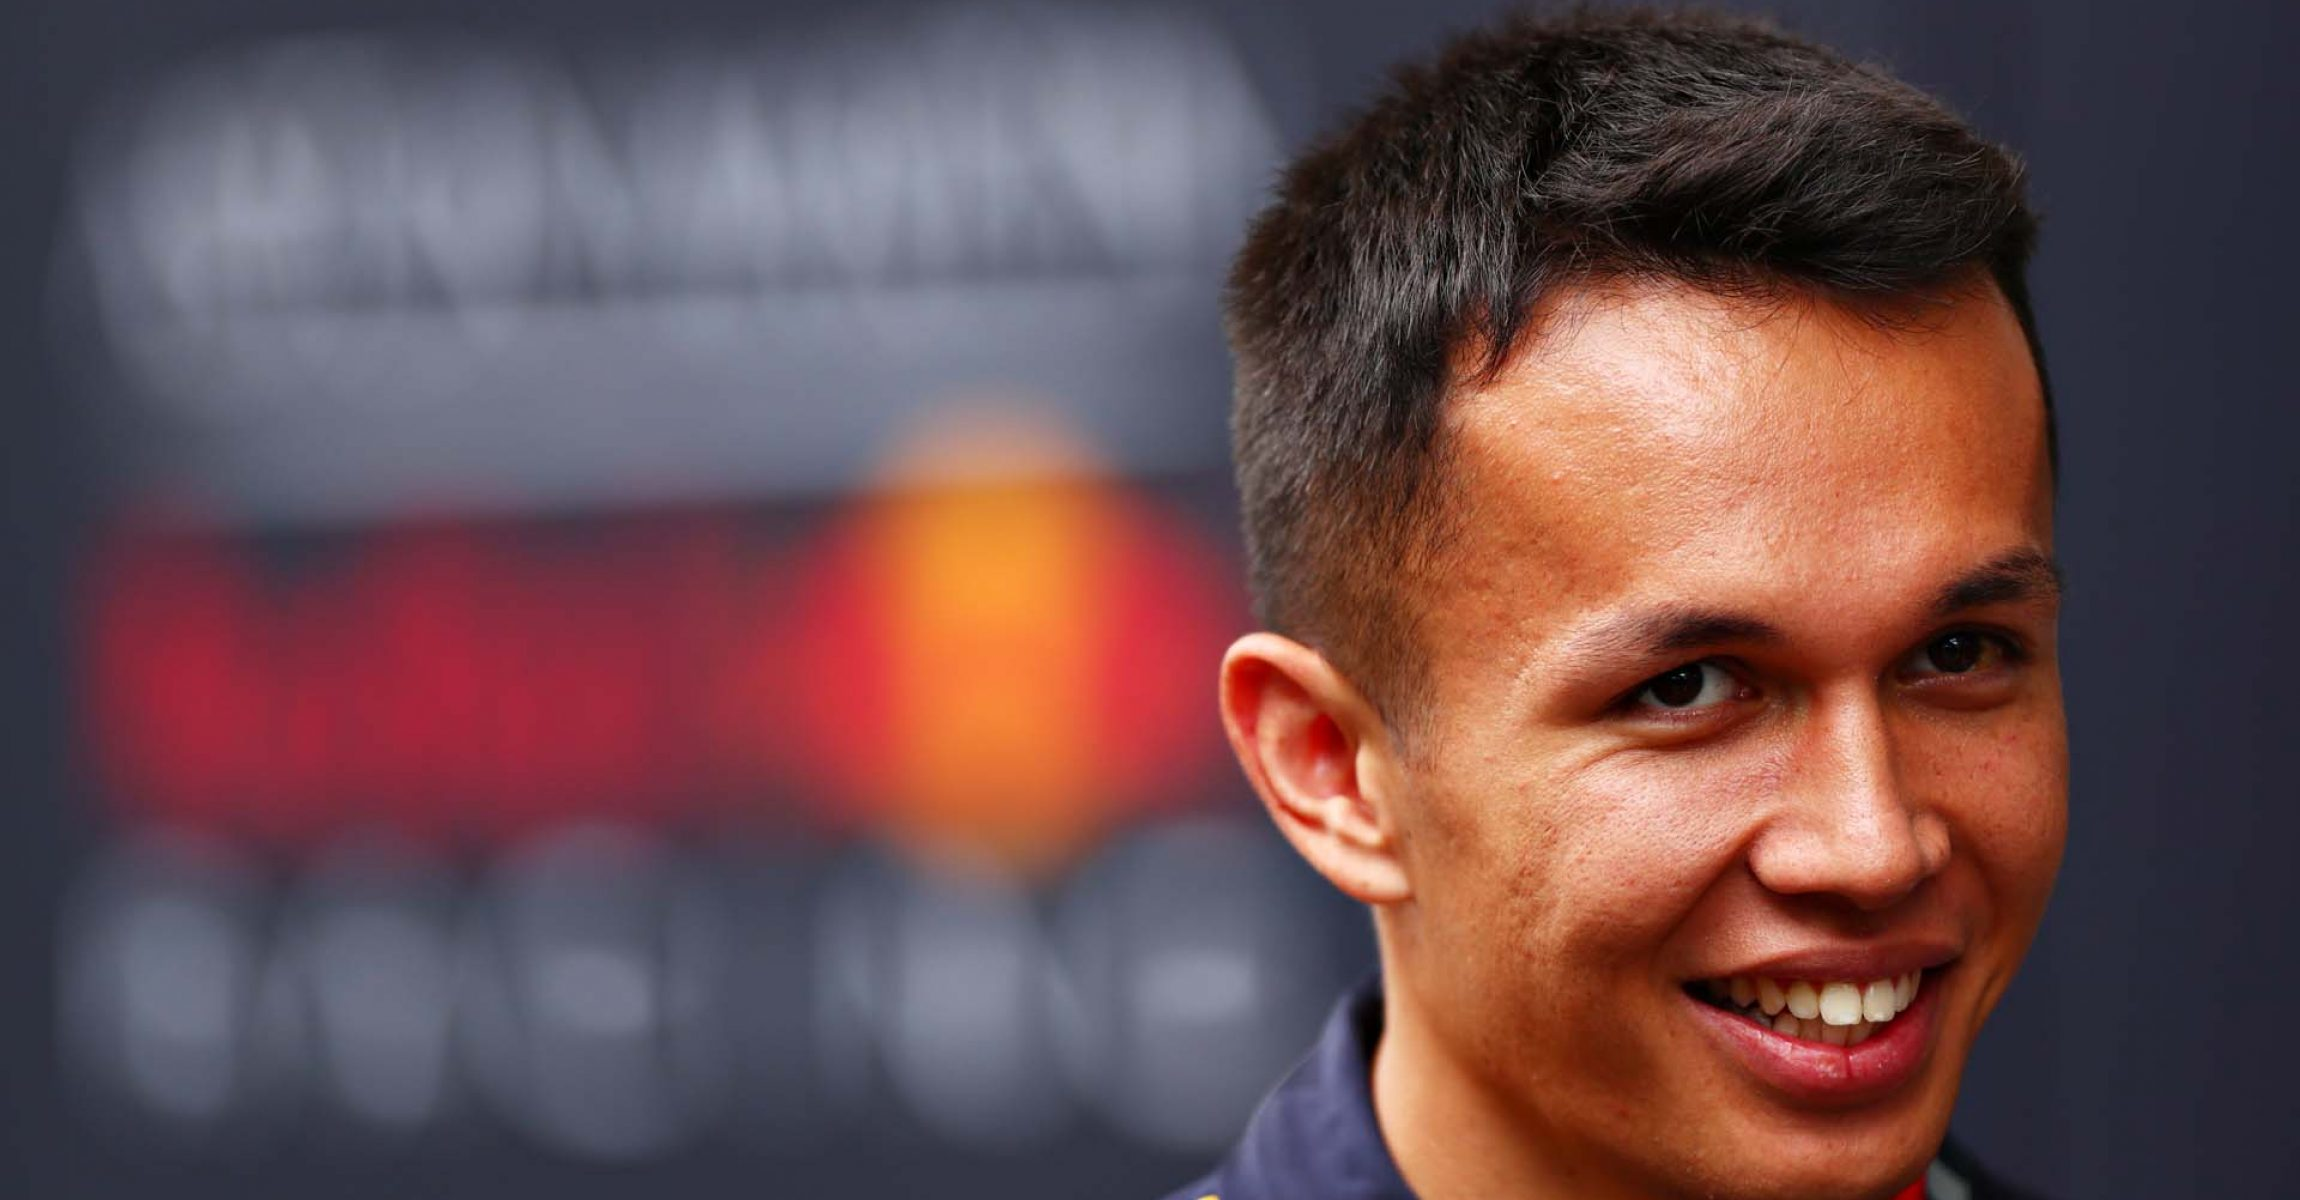 SAO PAULO, BRAZIL - NOVEMBER 14: Alexander Albon of Thailand and Red Bull Racing talks to the media in the Paddock during previews ahead of the F1 Grand Prix of Brazil at Autodromo Jose Carlos Pace on November 14, 2019 in Sao Paulo, Brazil. (Photo by Dan Istitene/Getty Images) // Getty Images / Red Bull Content Pool // AP-226DRAH252111 // Usage for editorial use only //